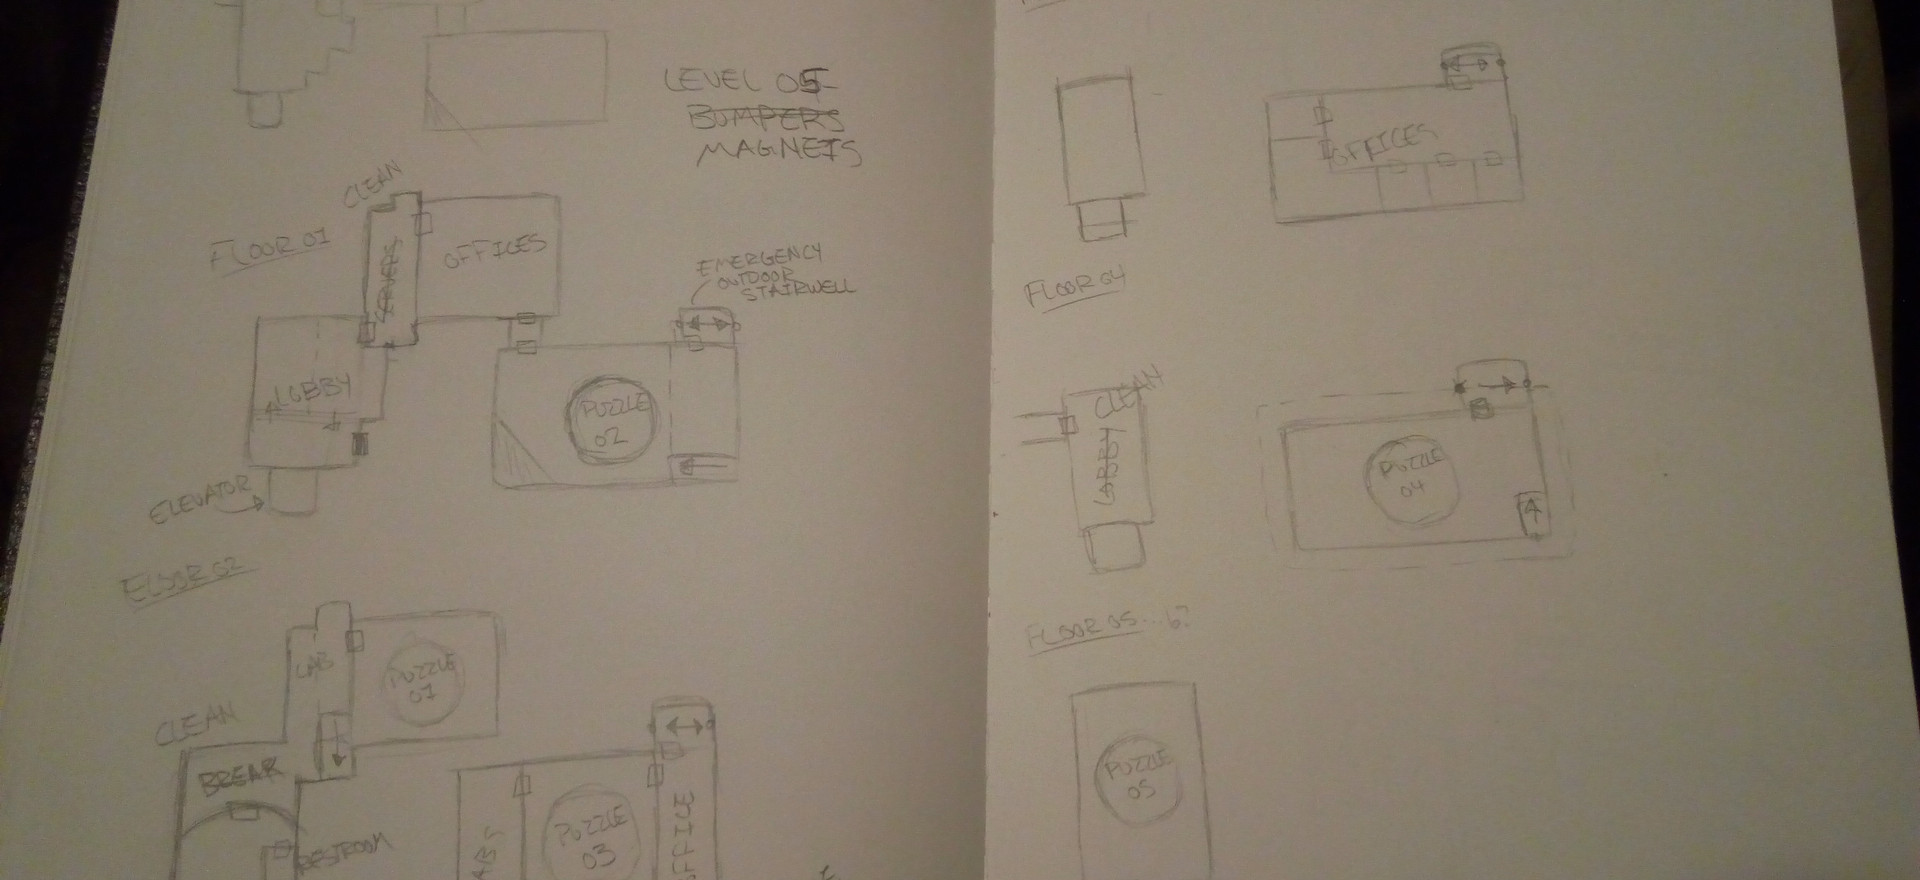 Because of the limited time frame, I created these sketches very quickly so I could get to work on the greybox.